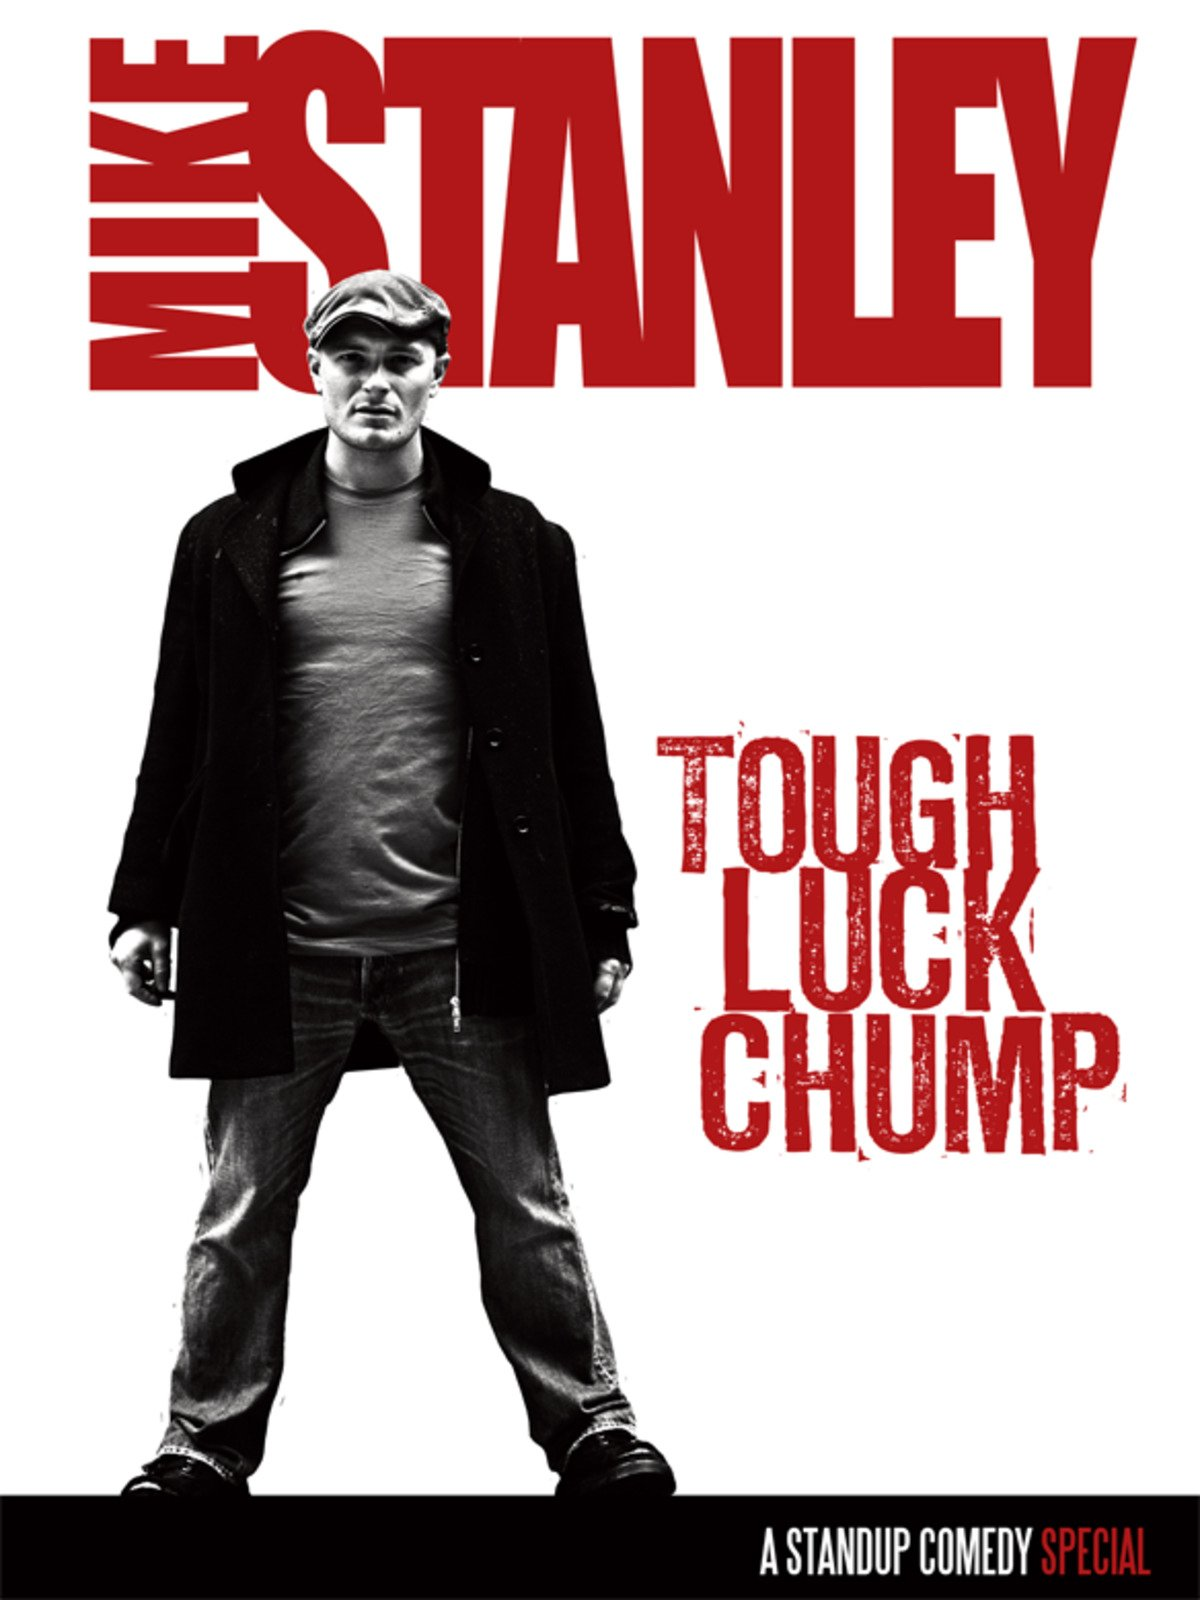 Mike Stanley: Tough Luck Chump